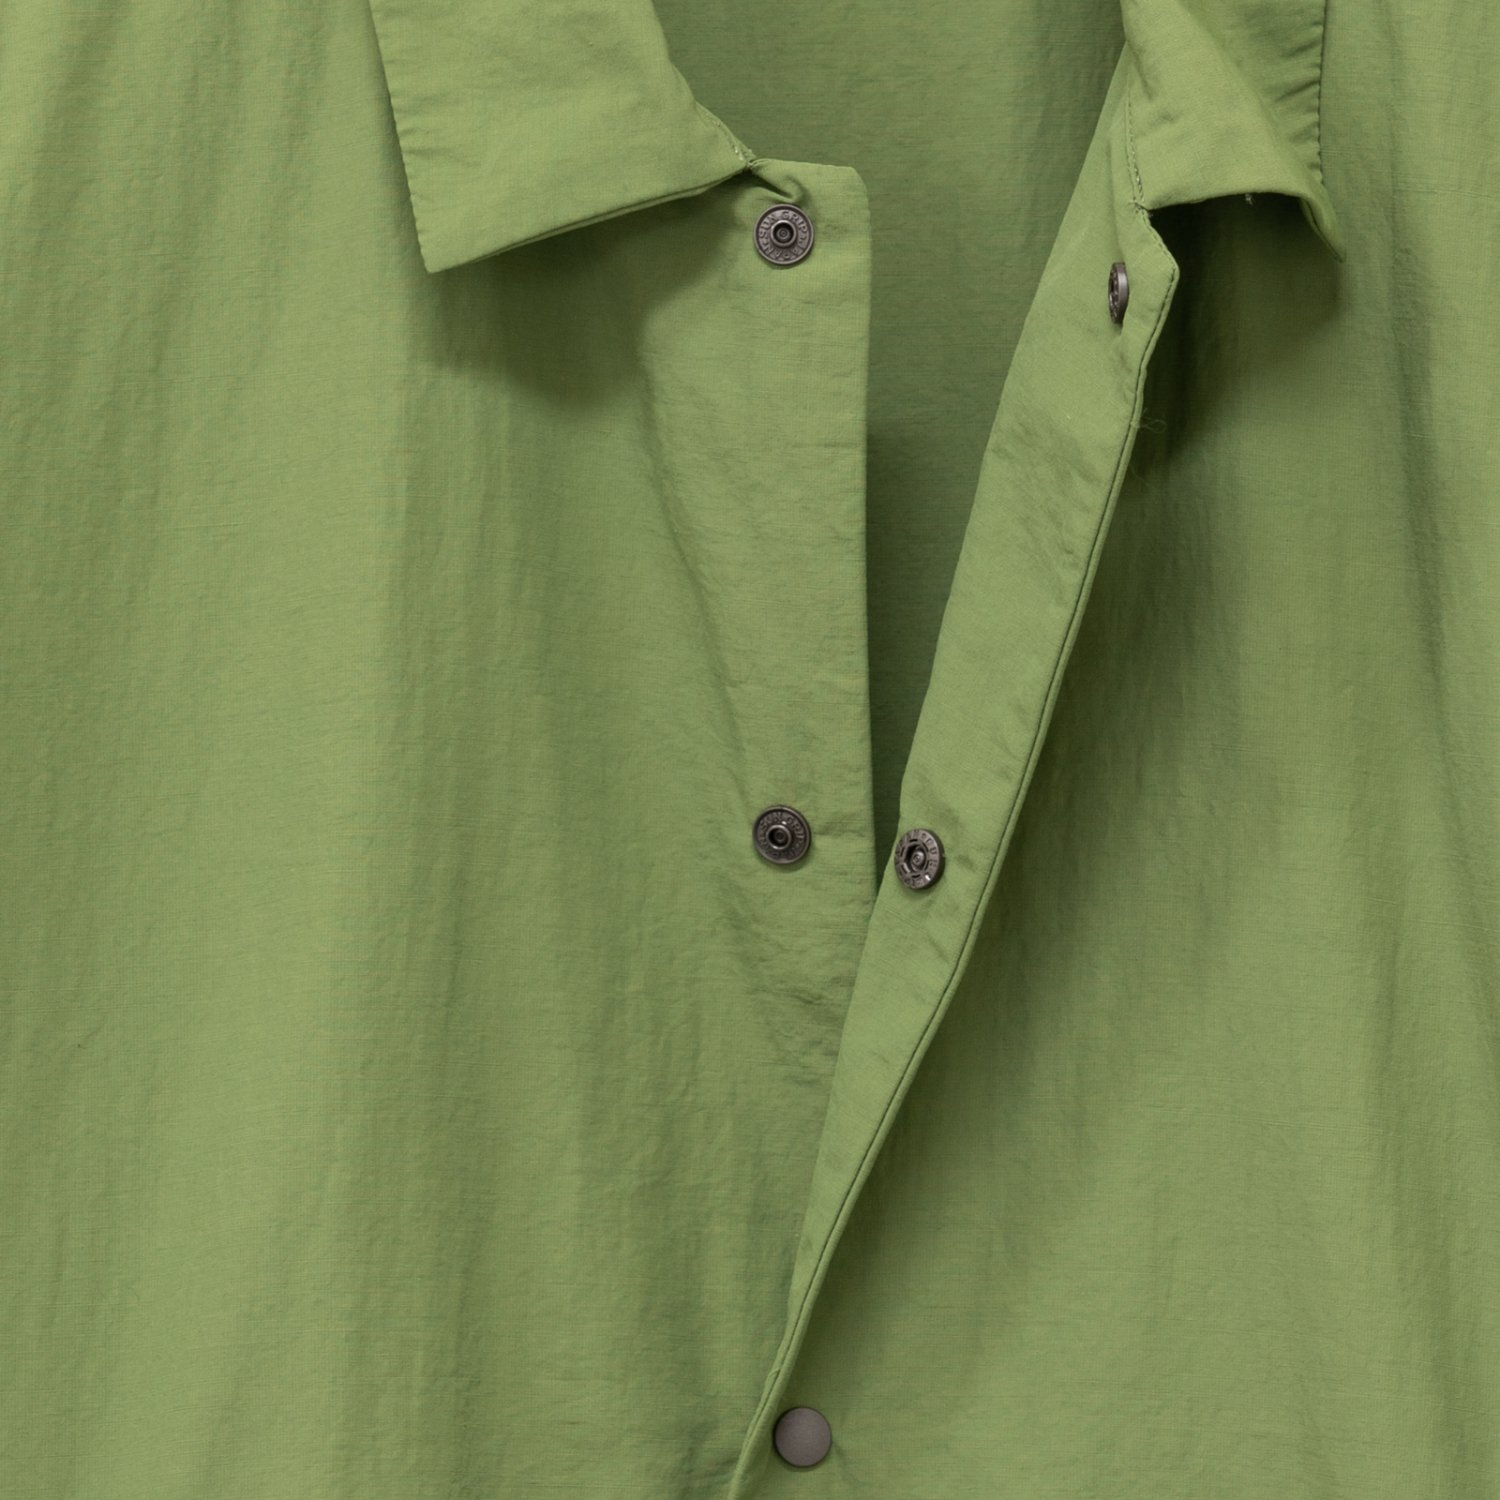 DESCENTE ddd * COACH SHIRT * Khaki